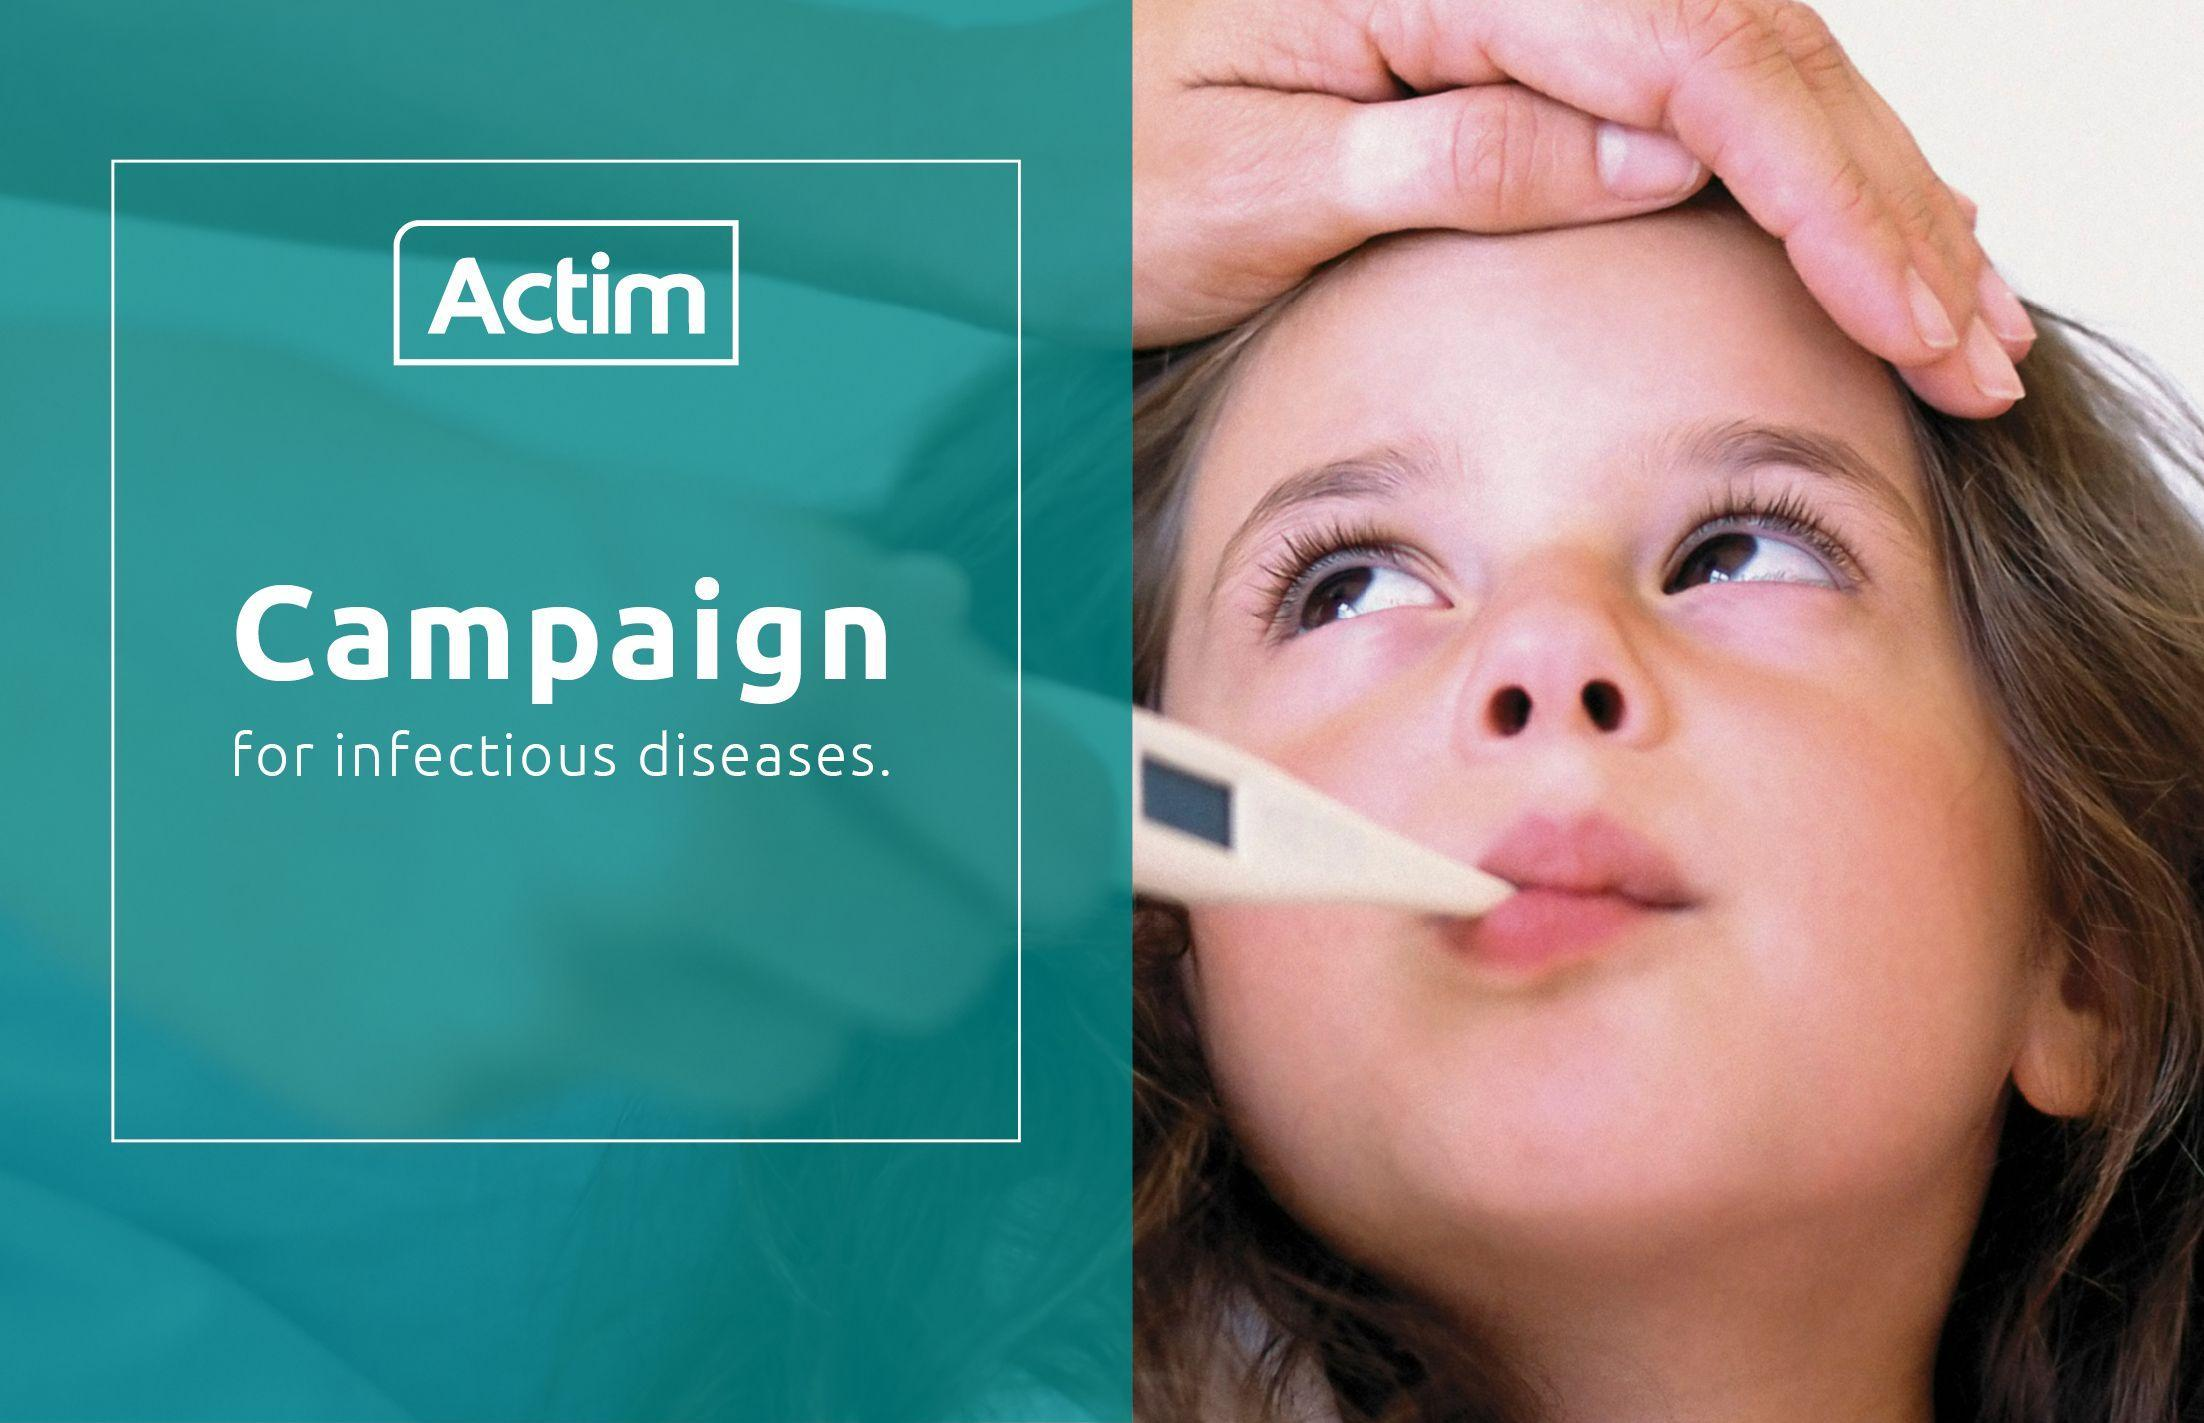 Actim campaign for infectious diseases 2020